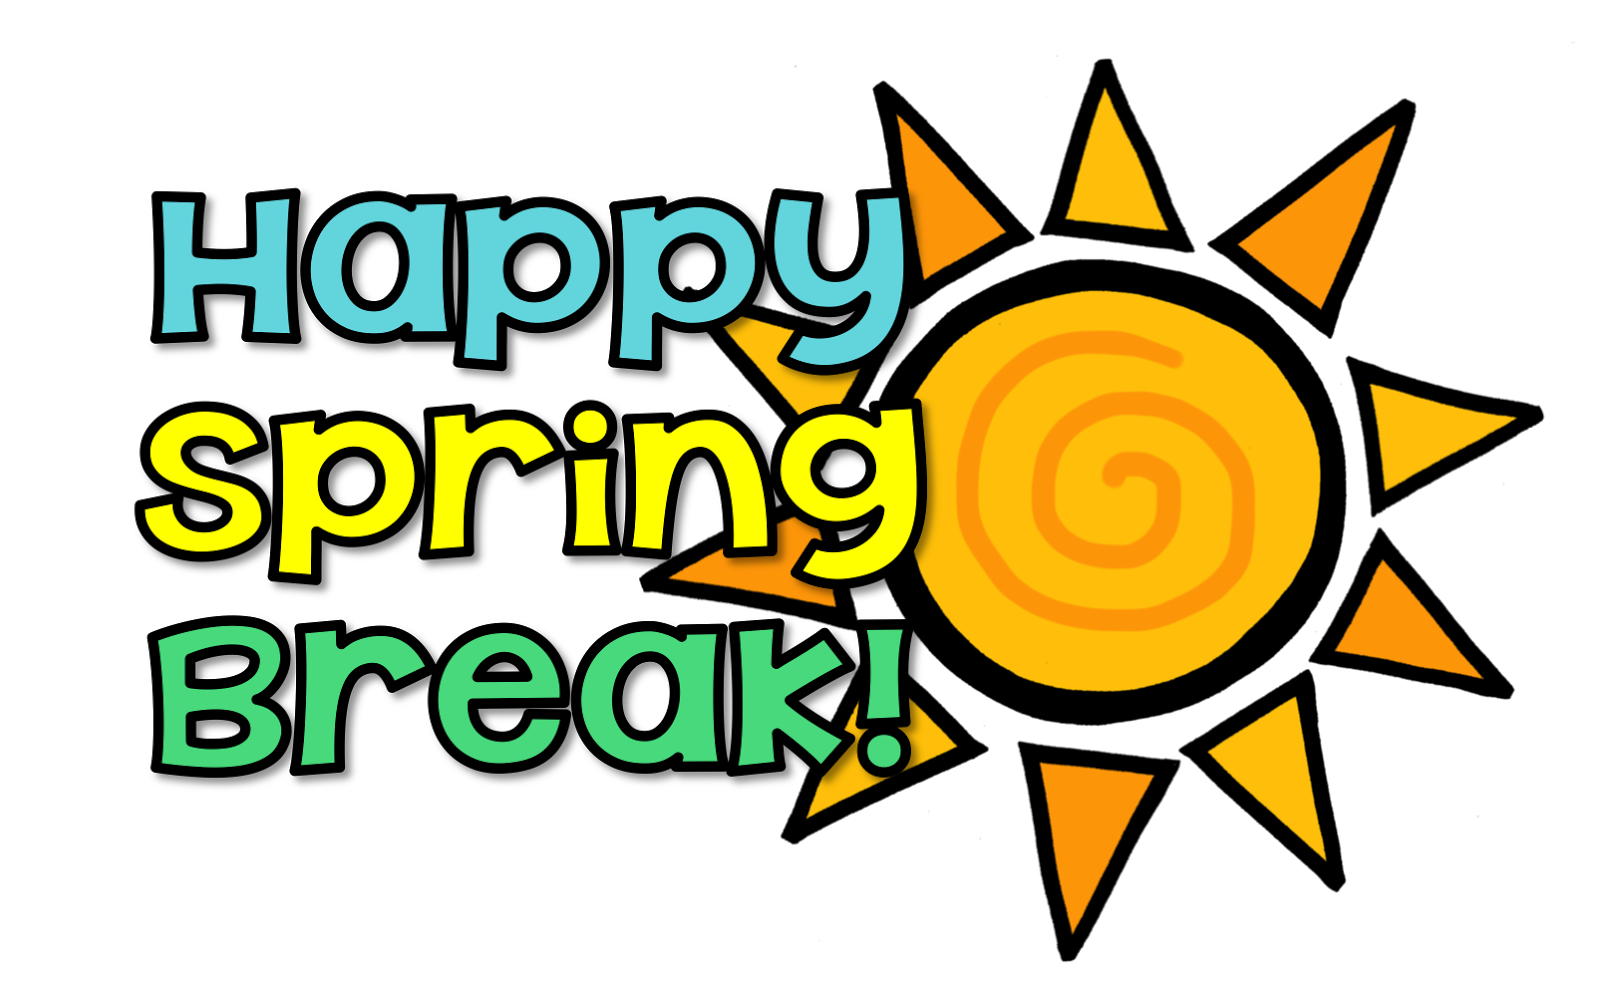 Hills clipart spring. Free break cliparts download